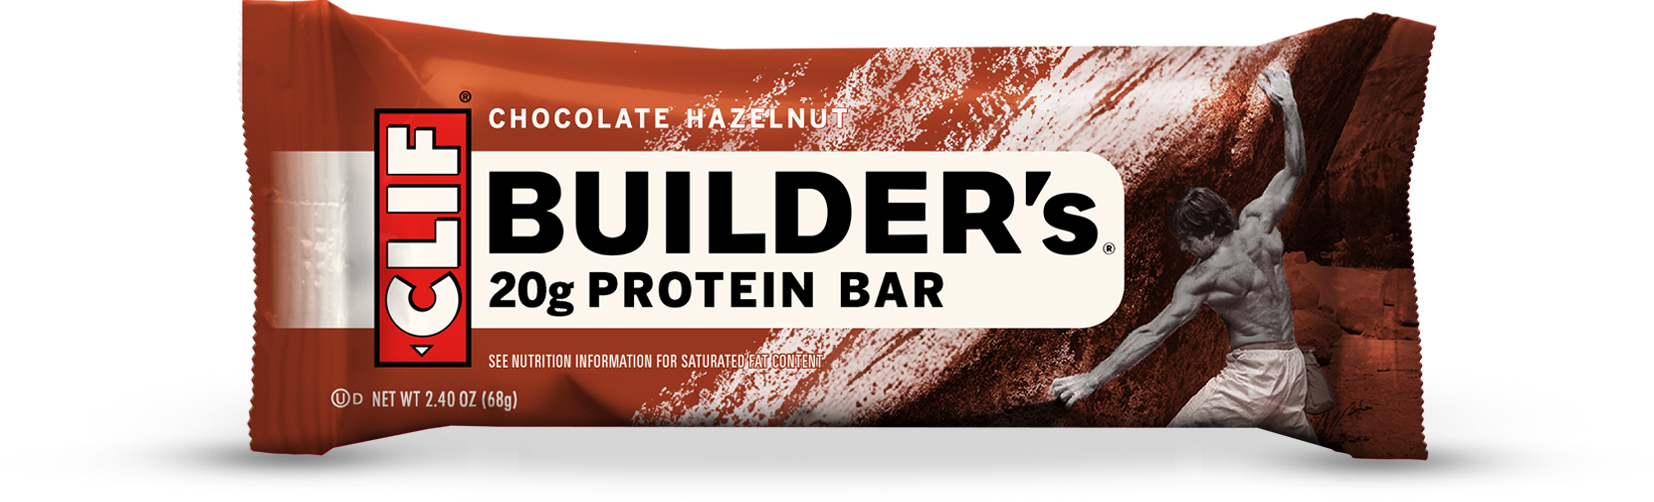 Clif Builder's Chocolate Hazelnut